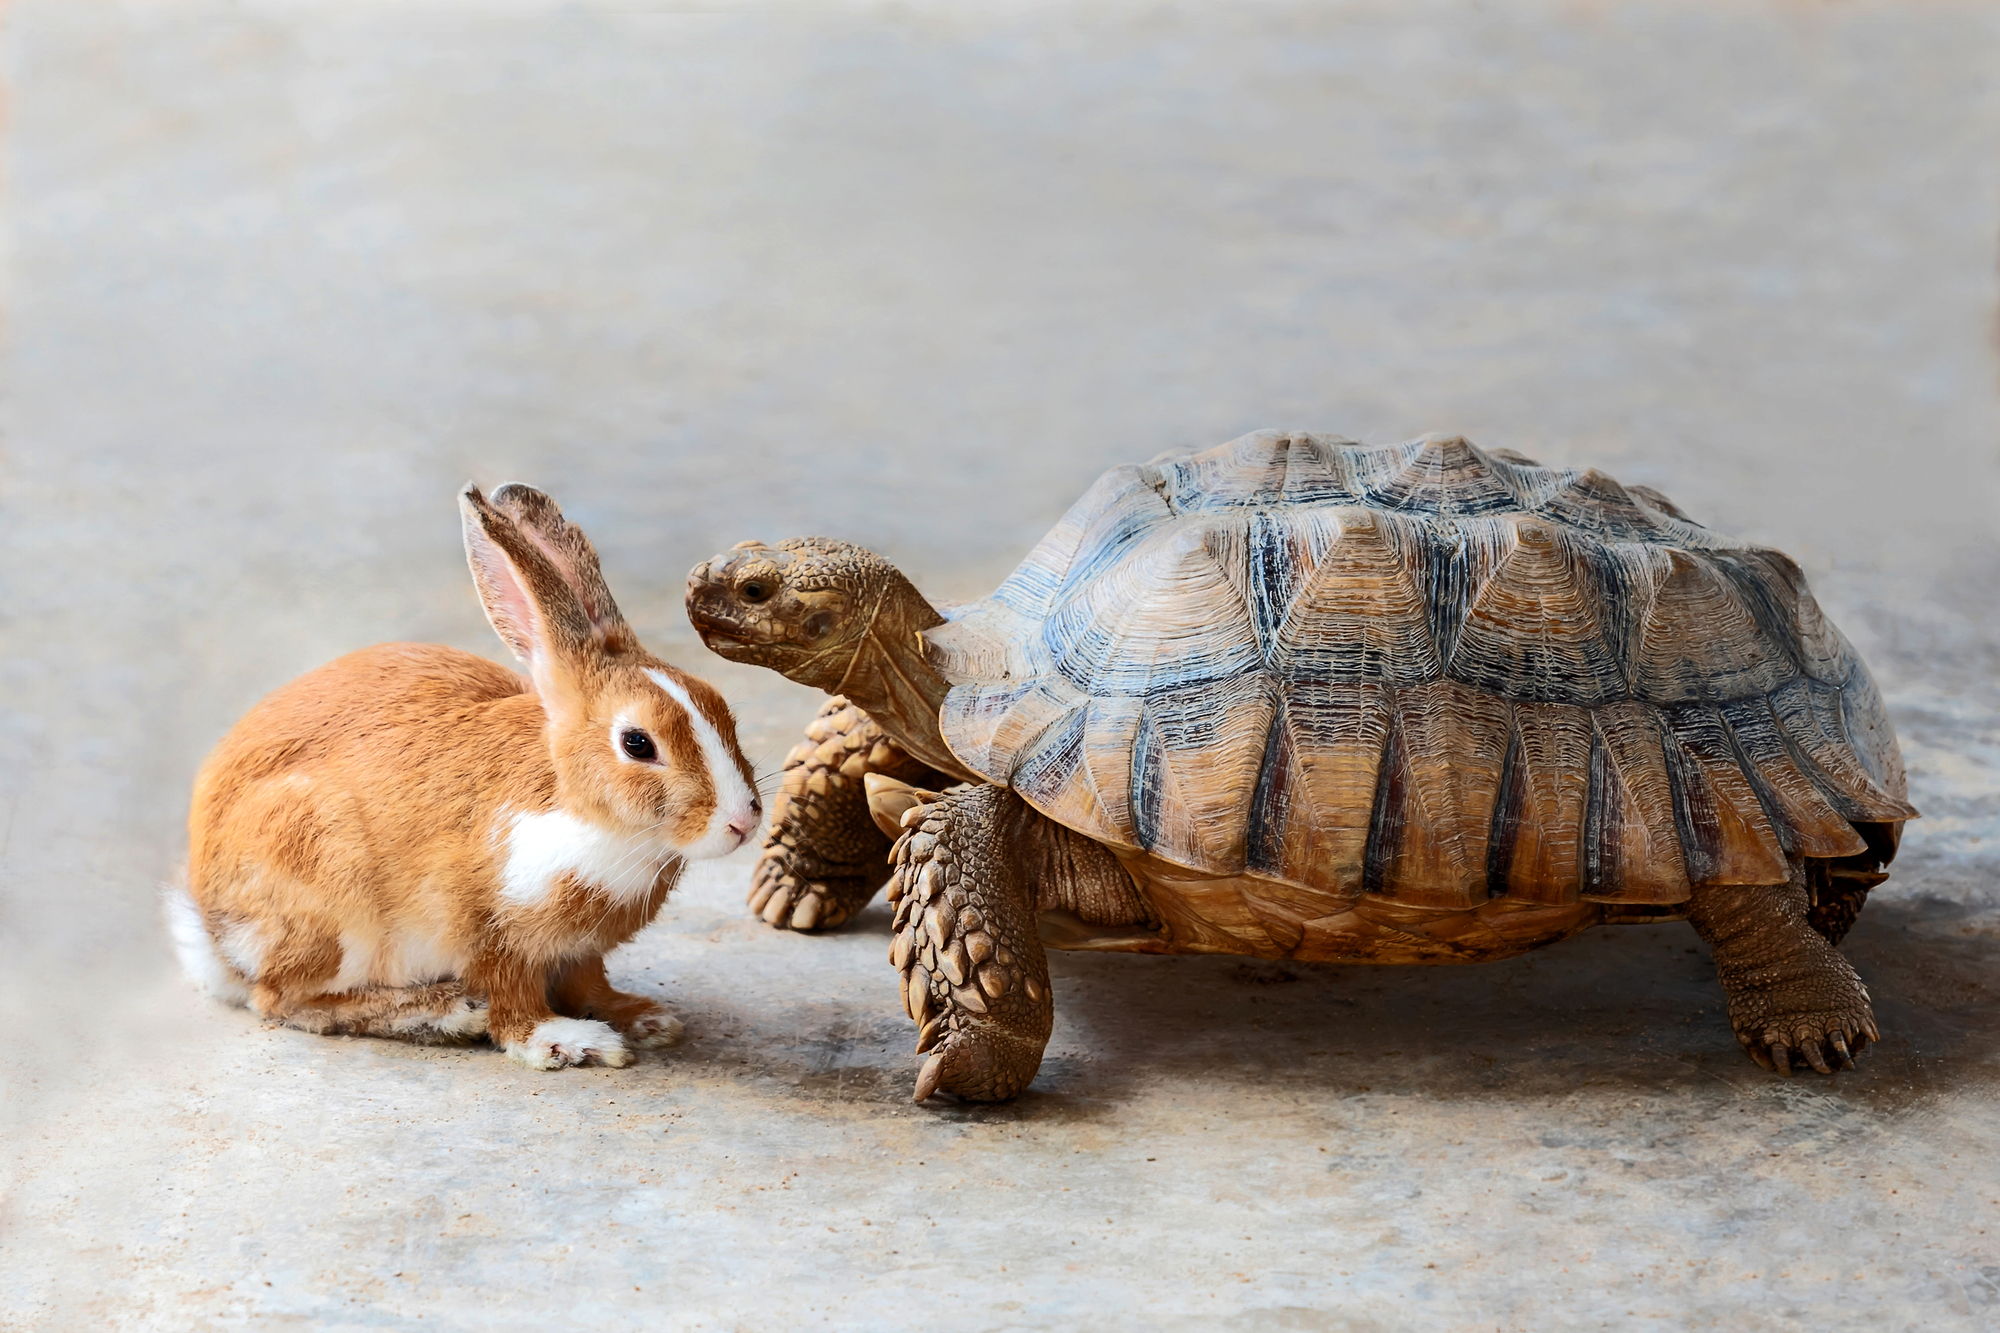 Rabbit and turtle are discussing the competition